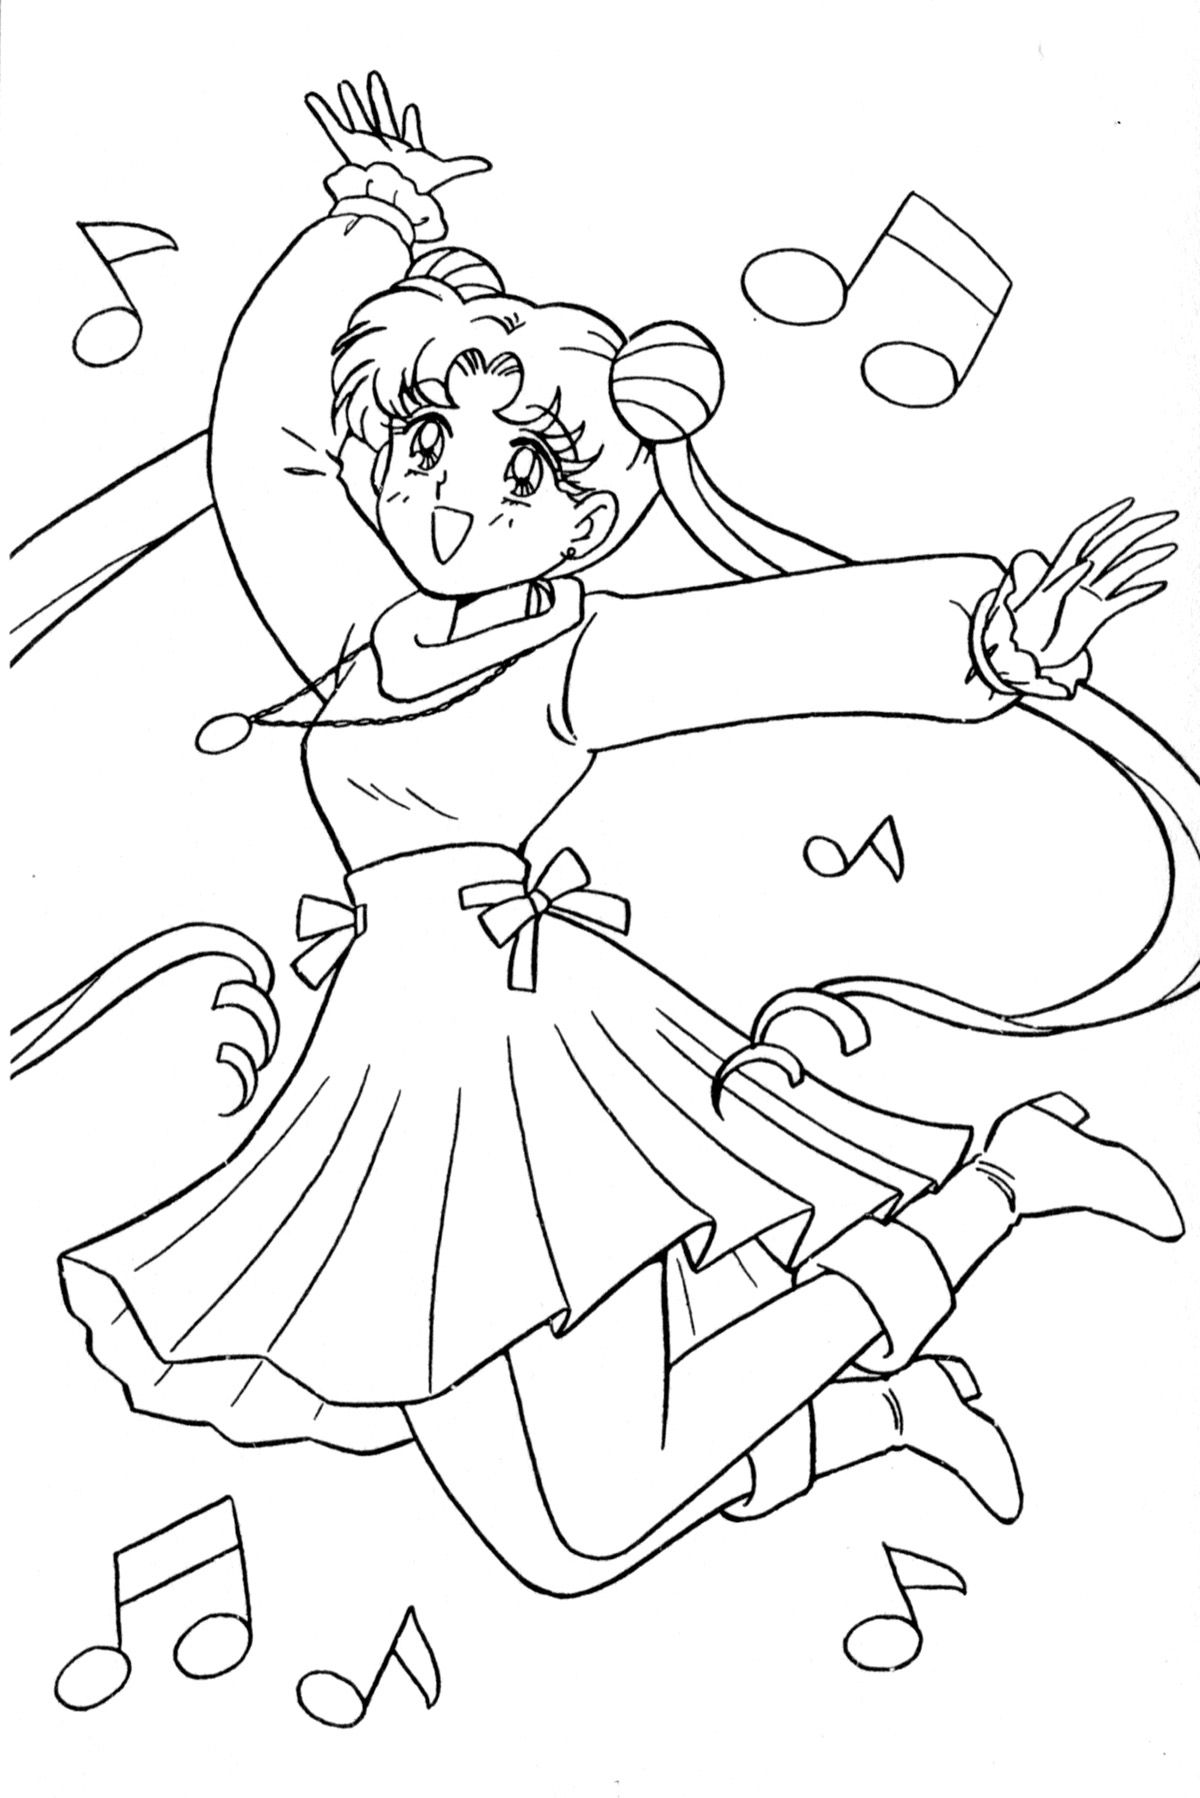 Pin by Monkmonk Smith on color pixs | Sailor moon coloring pages ...